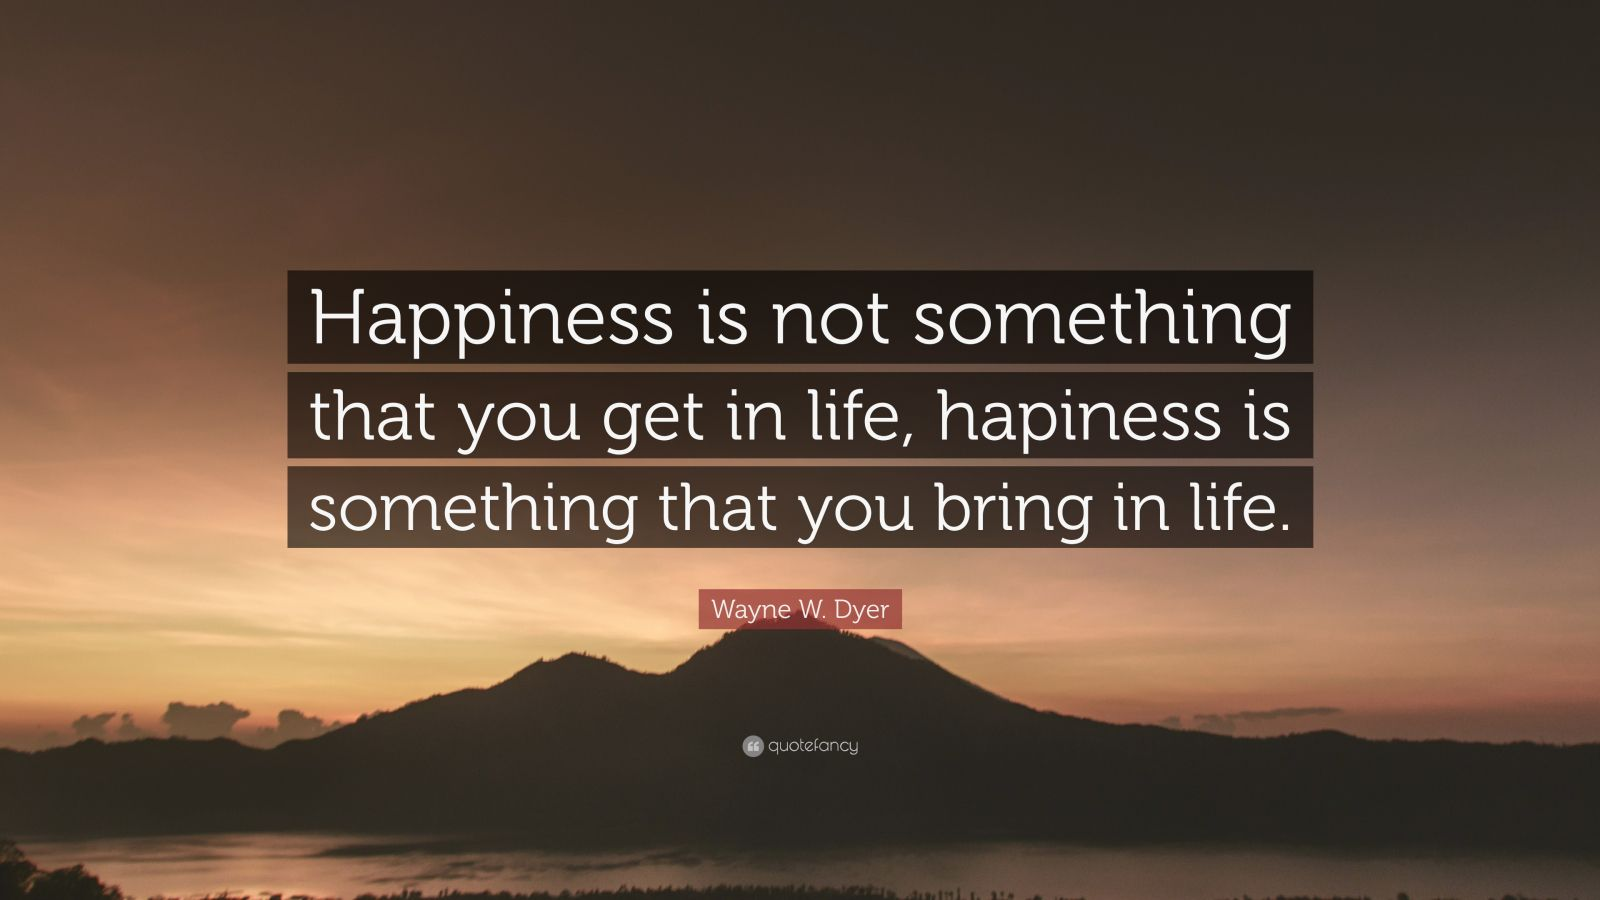 """Wayne W. Dyer Quote: """"Happiness is not something that you get in life, hapiness is something that you bring in life."""""""